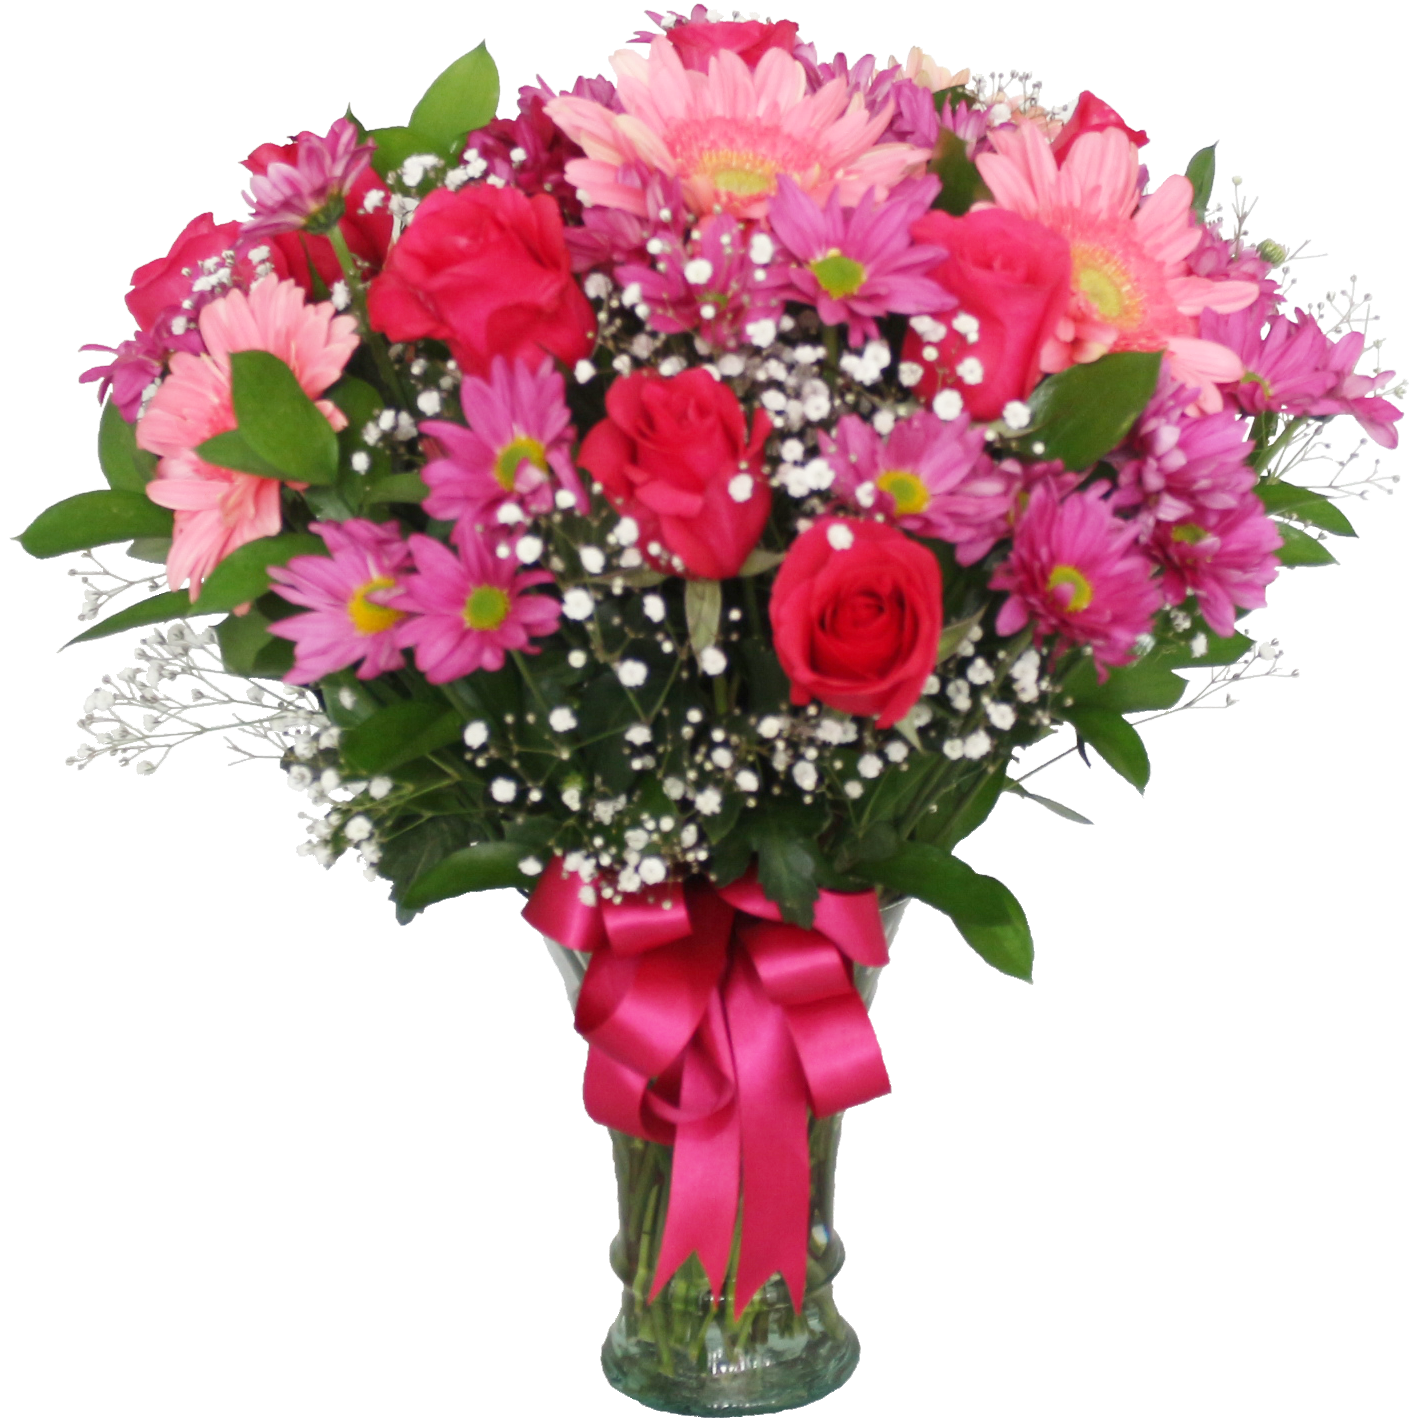 Images de flores clipart images gallery for free download.